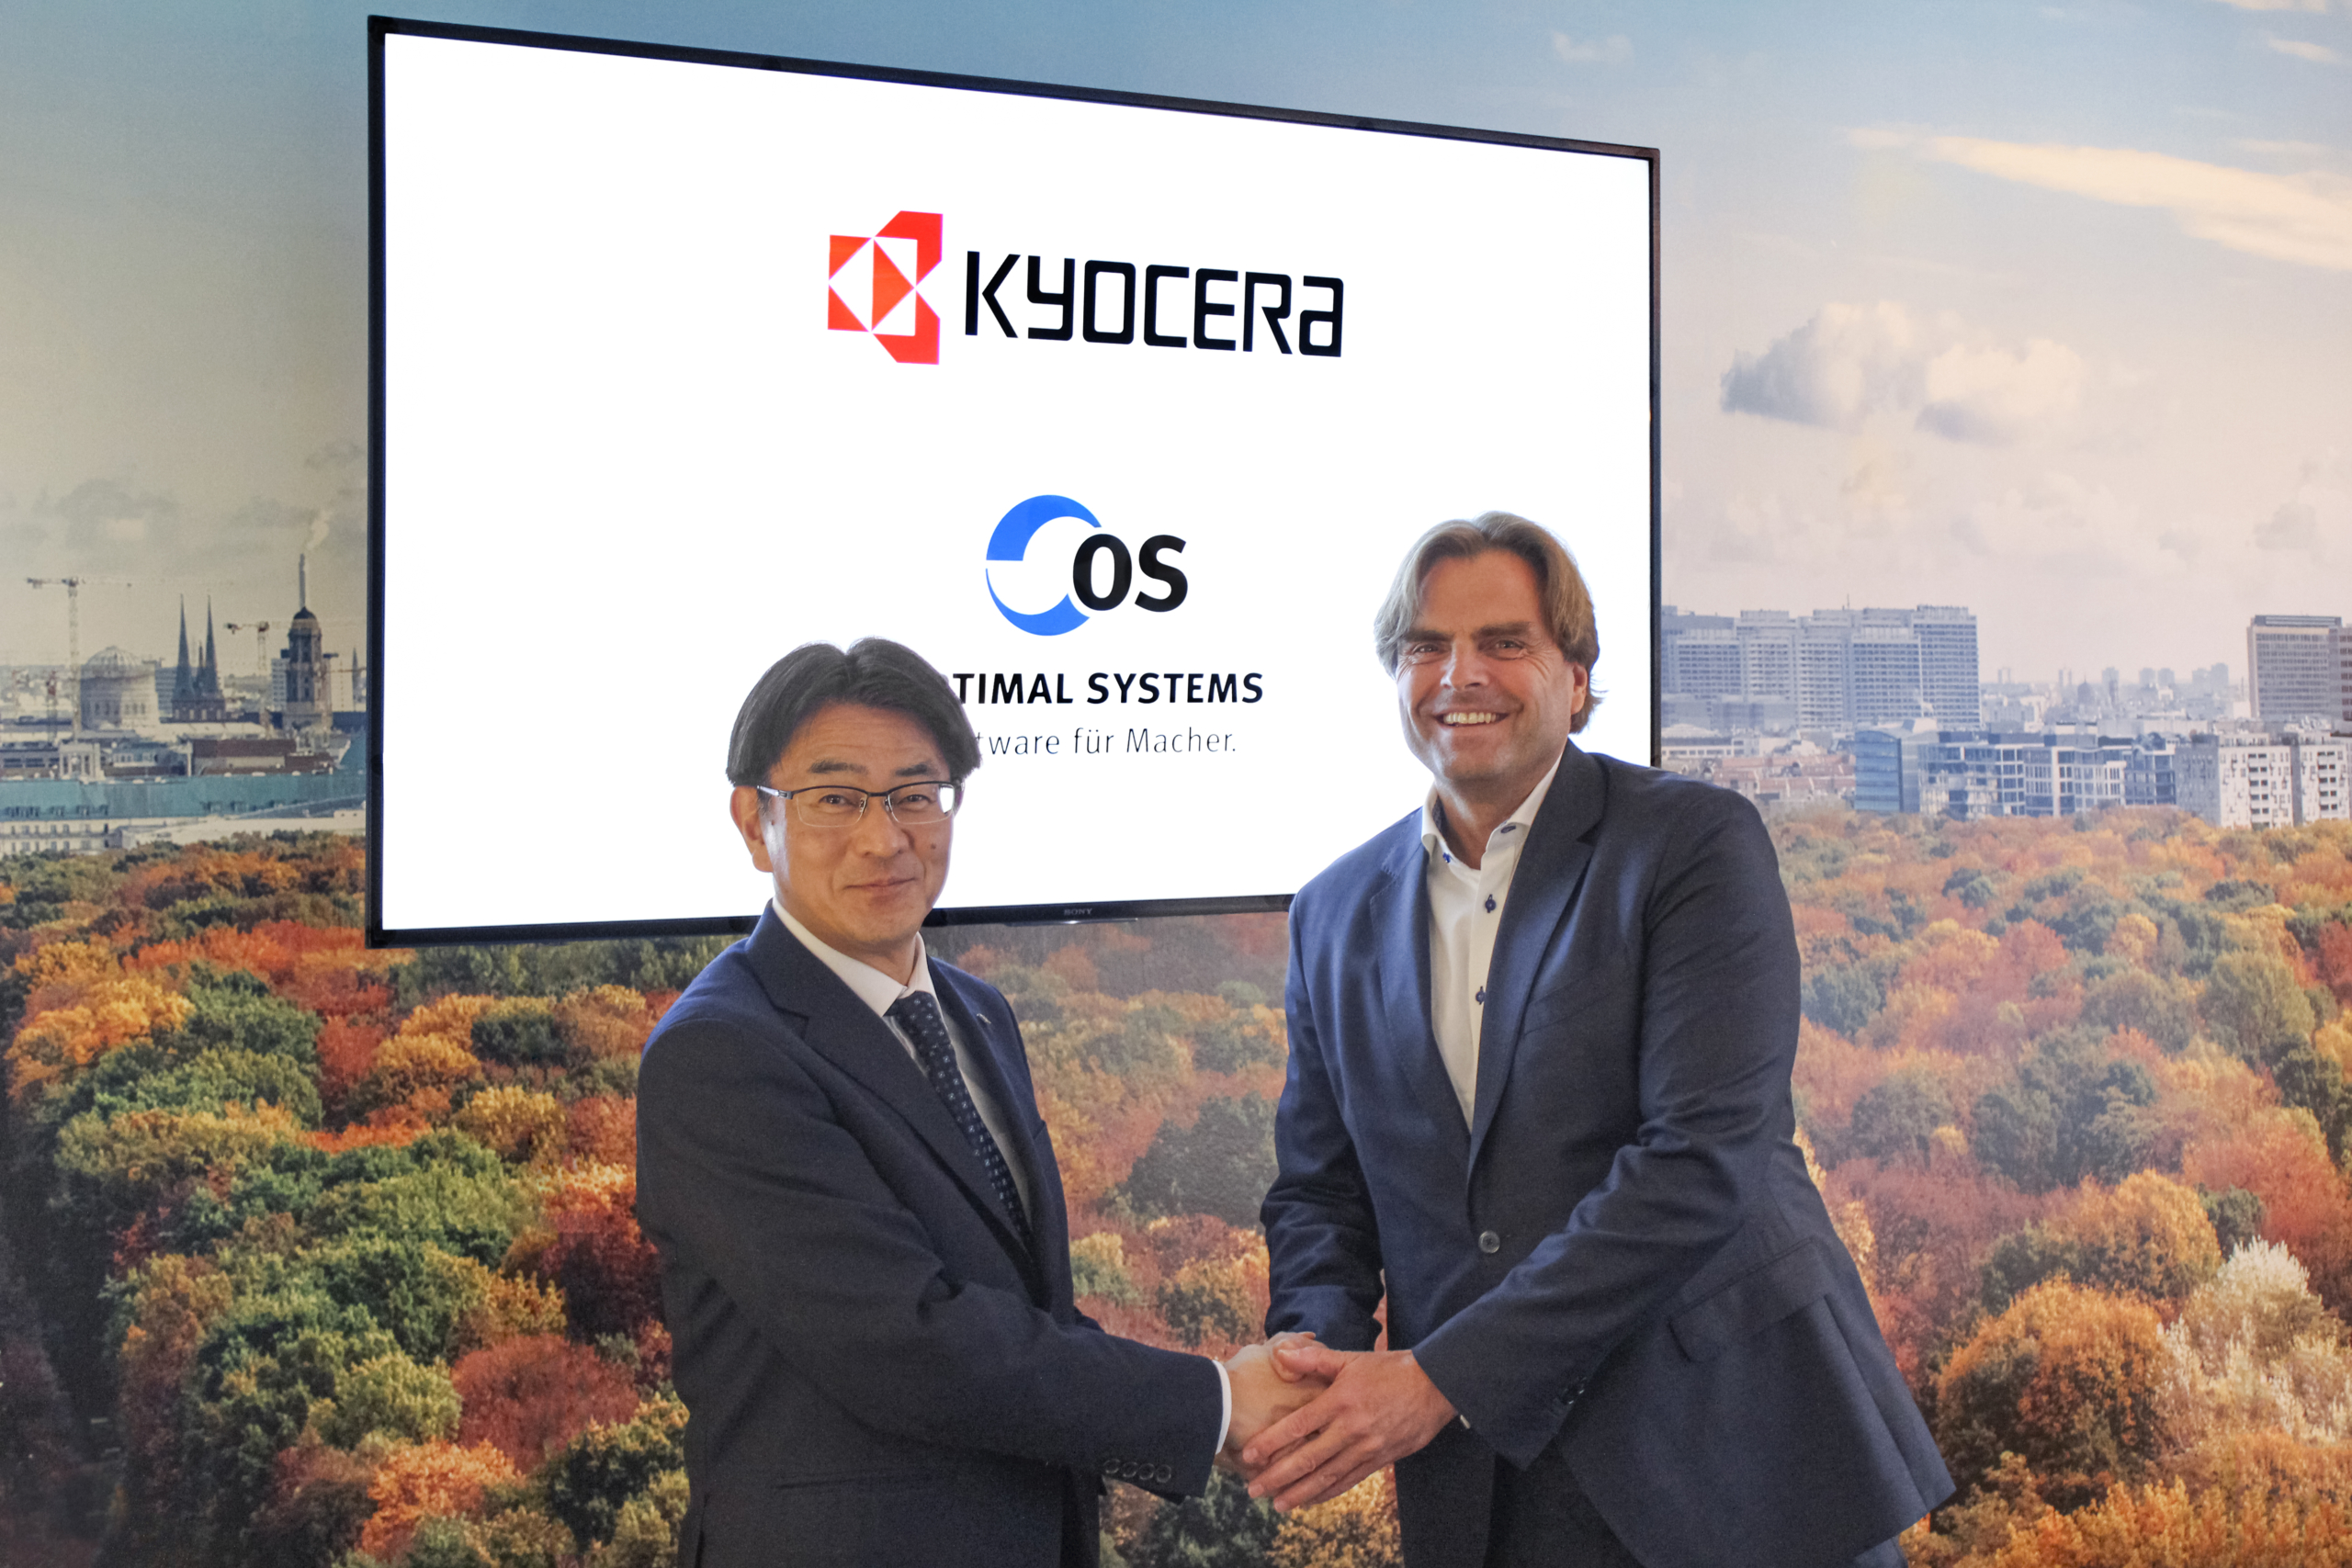 Norihiko Ina, president of Kycera Document Solutions, and Karsten Renz, CEO of OPTIMAL SYSTEMS, at OPTIMAL SYSTEMS' headquarters in Berlin on January 20, 2020